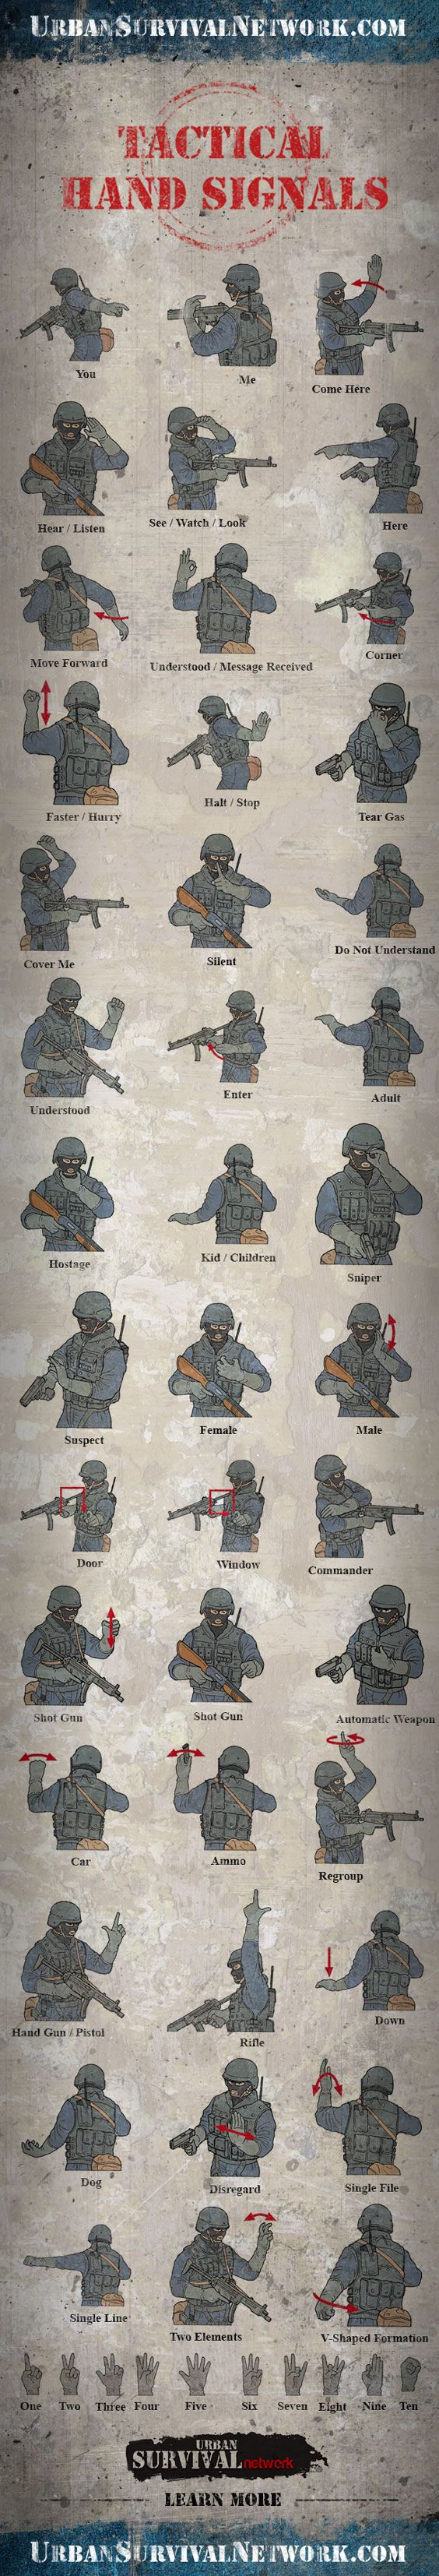 Tactical Hand Signals That Every Prepper Should Know #Survival #Preppers